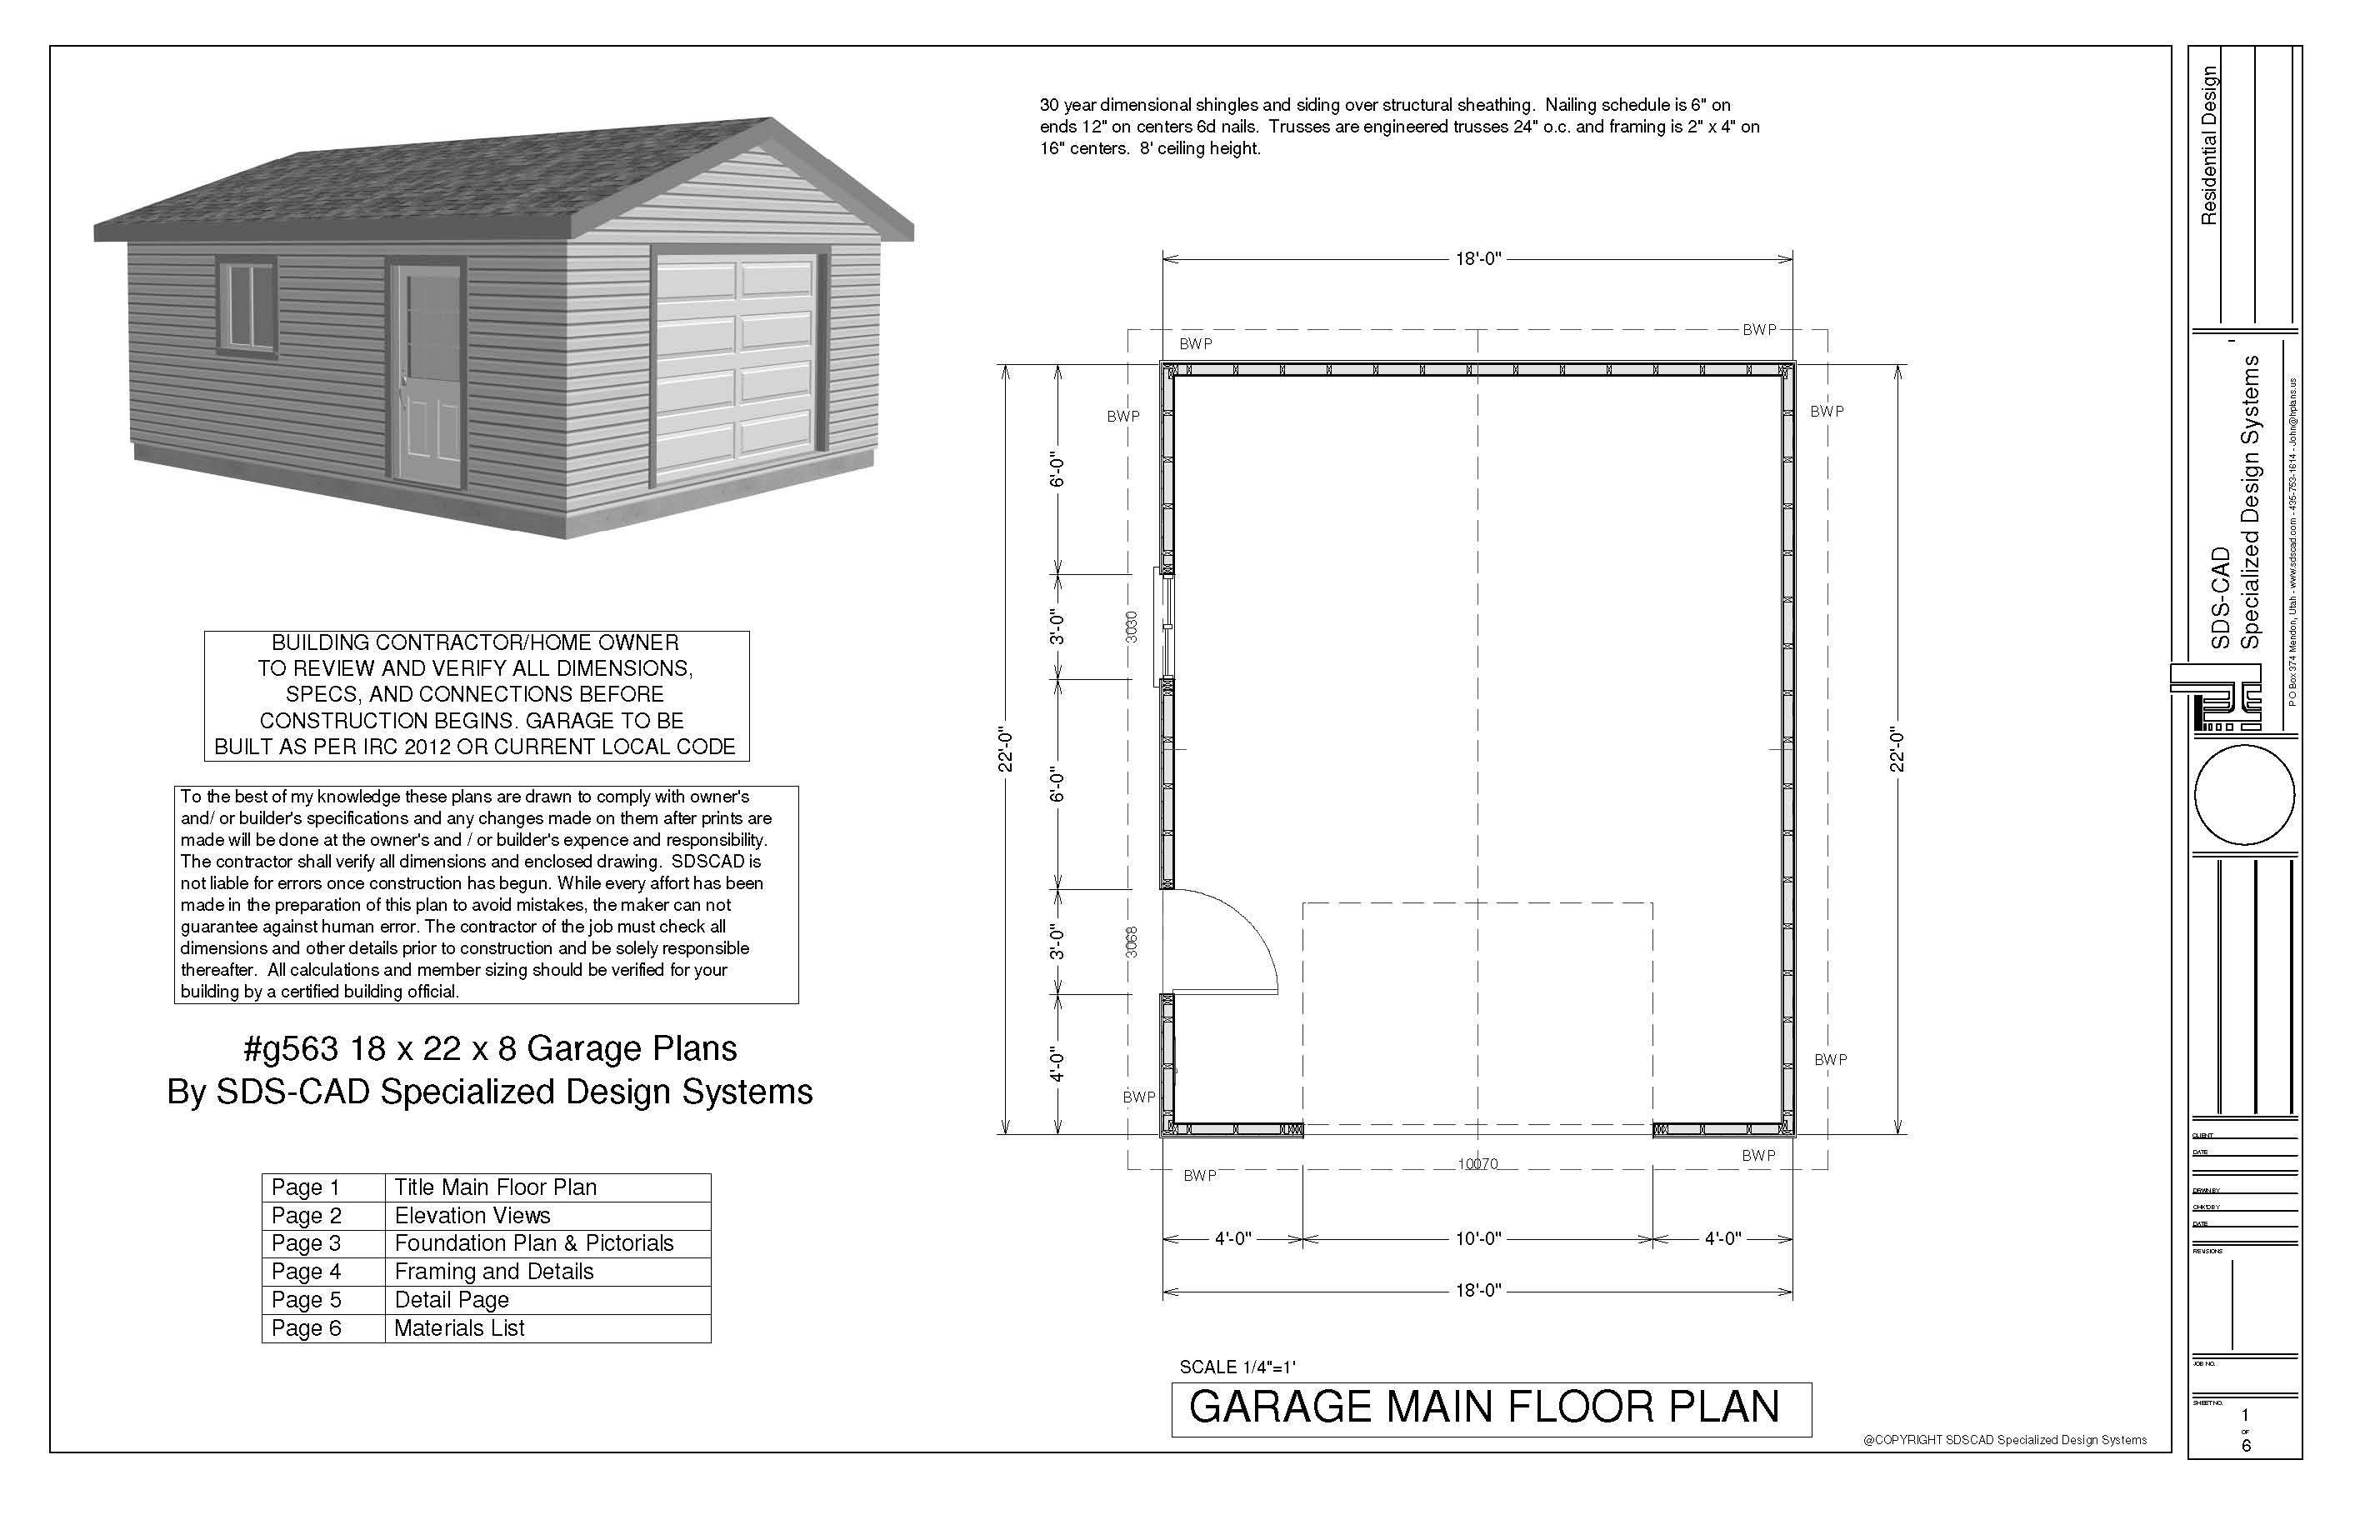 Download Free Sample Garage Plan g563 18 x 22 x 8 Garage Plans in – Free Garage Building Plans Download